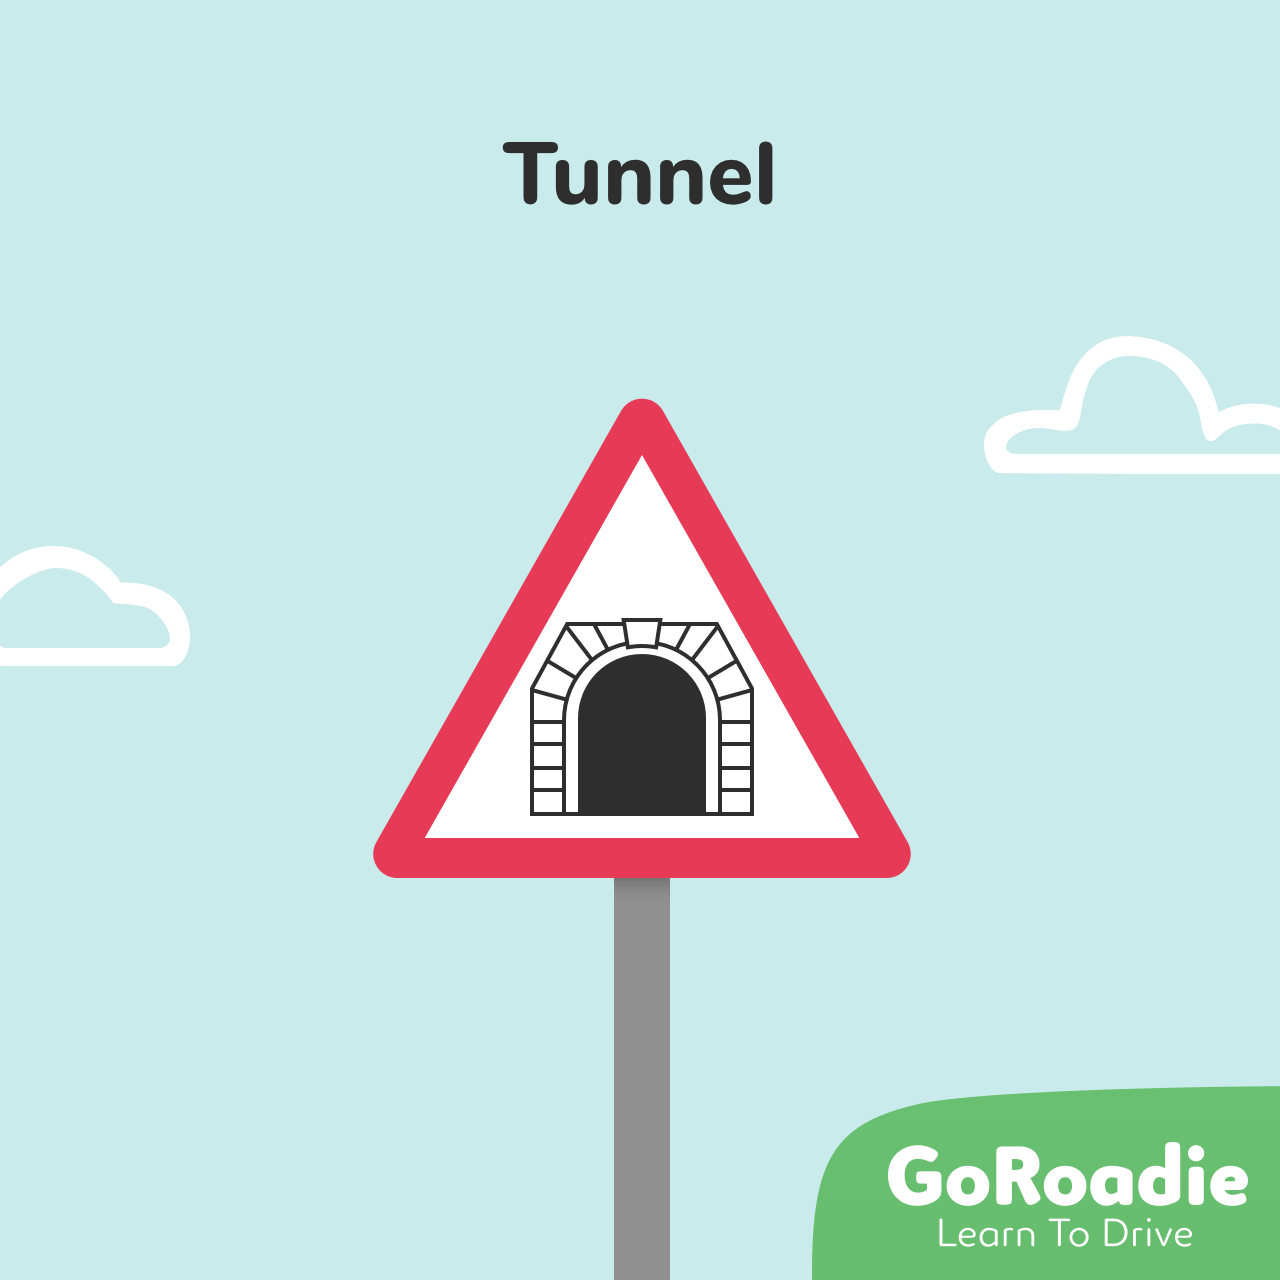 Tunnel traffic sign illustration